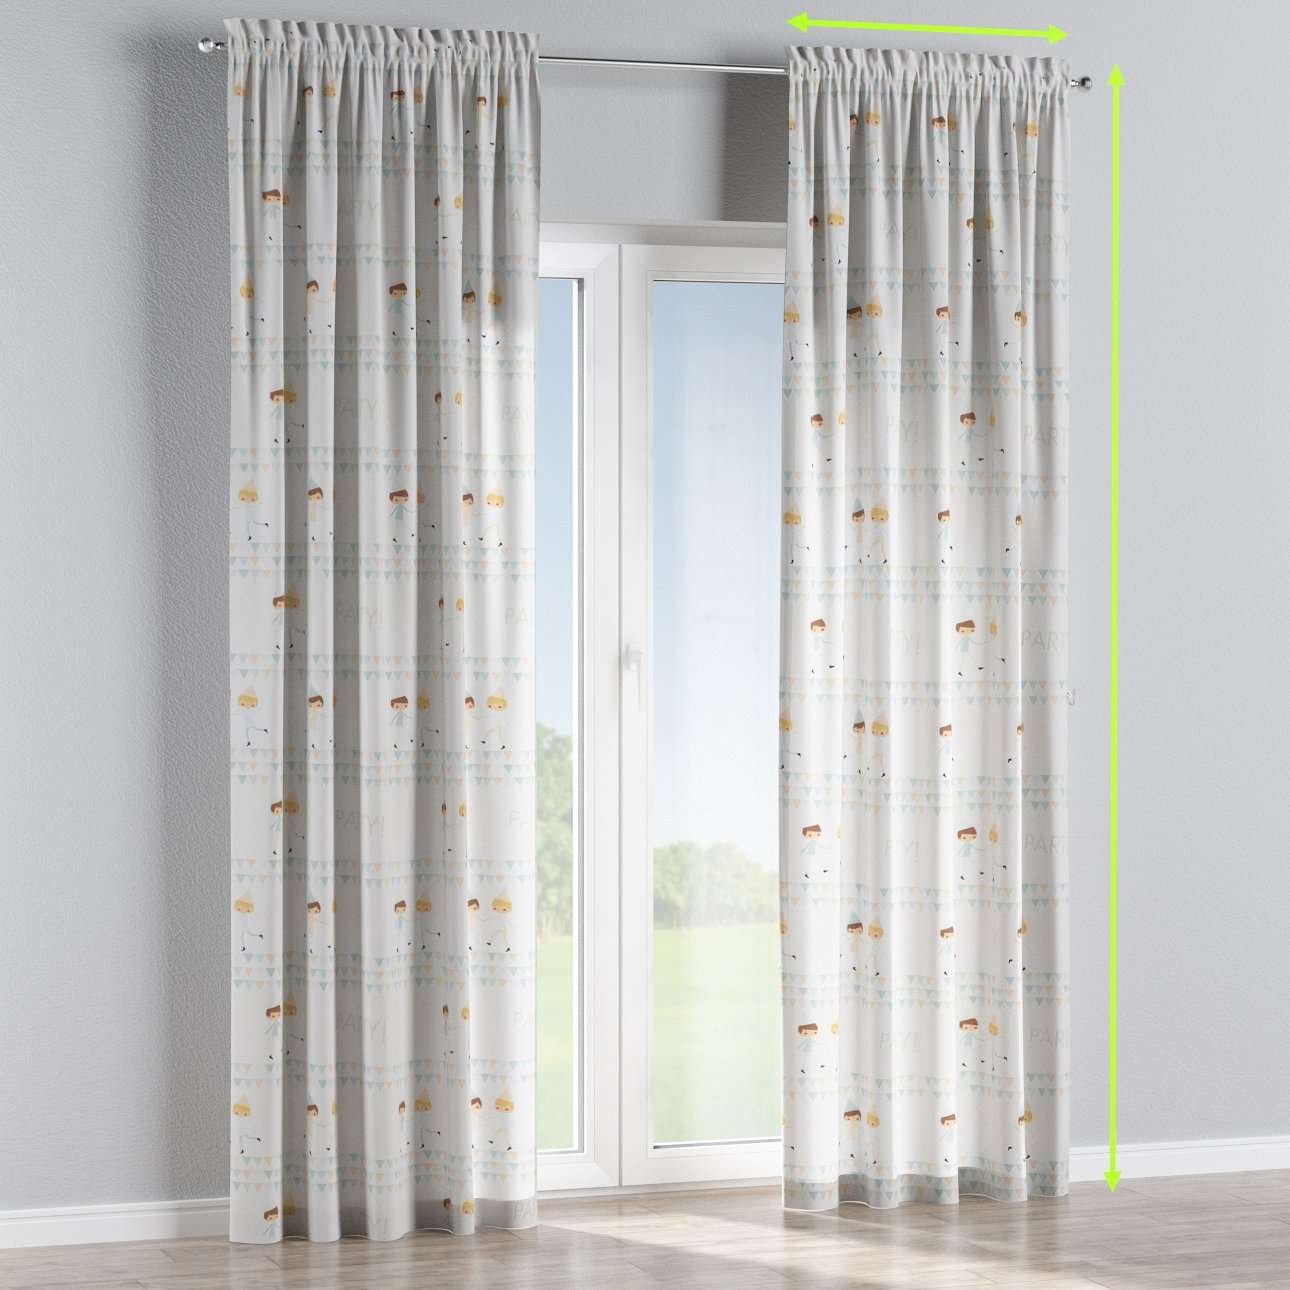 Slot and frill curtains in collection Apanona, fabric: 151-01